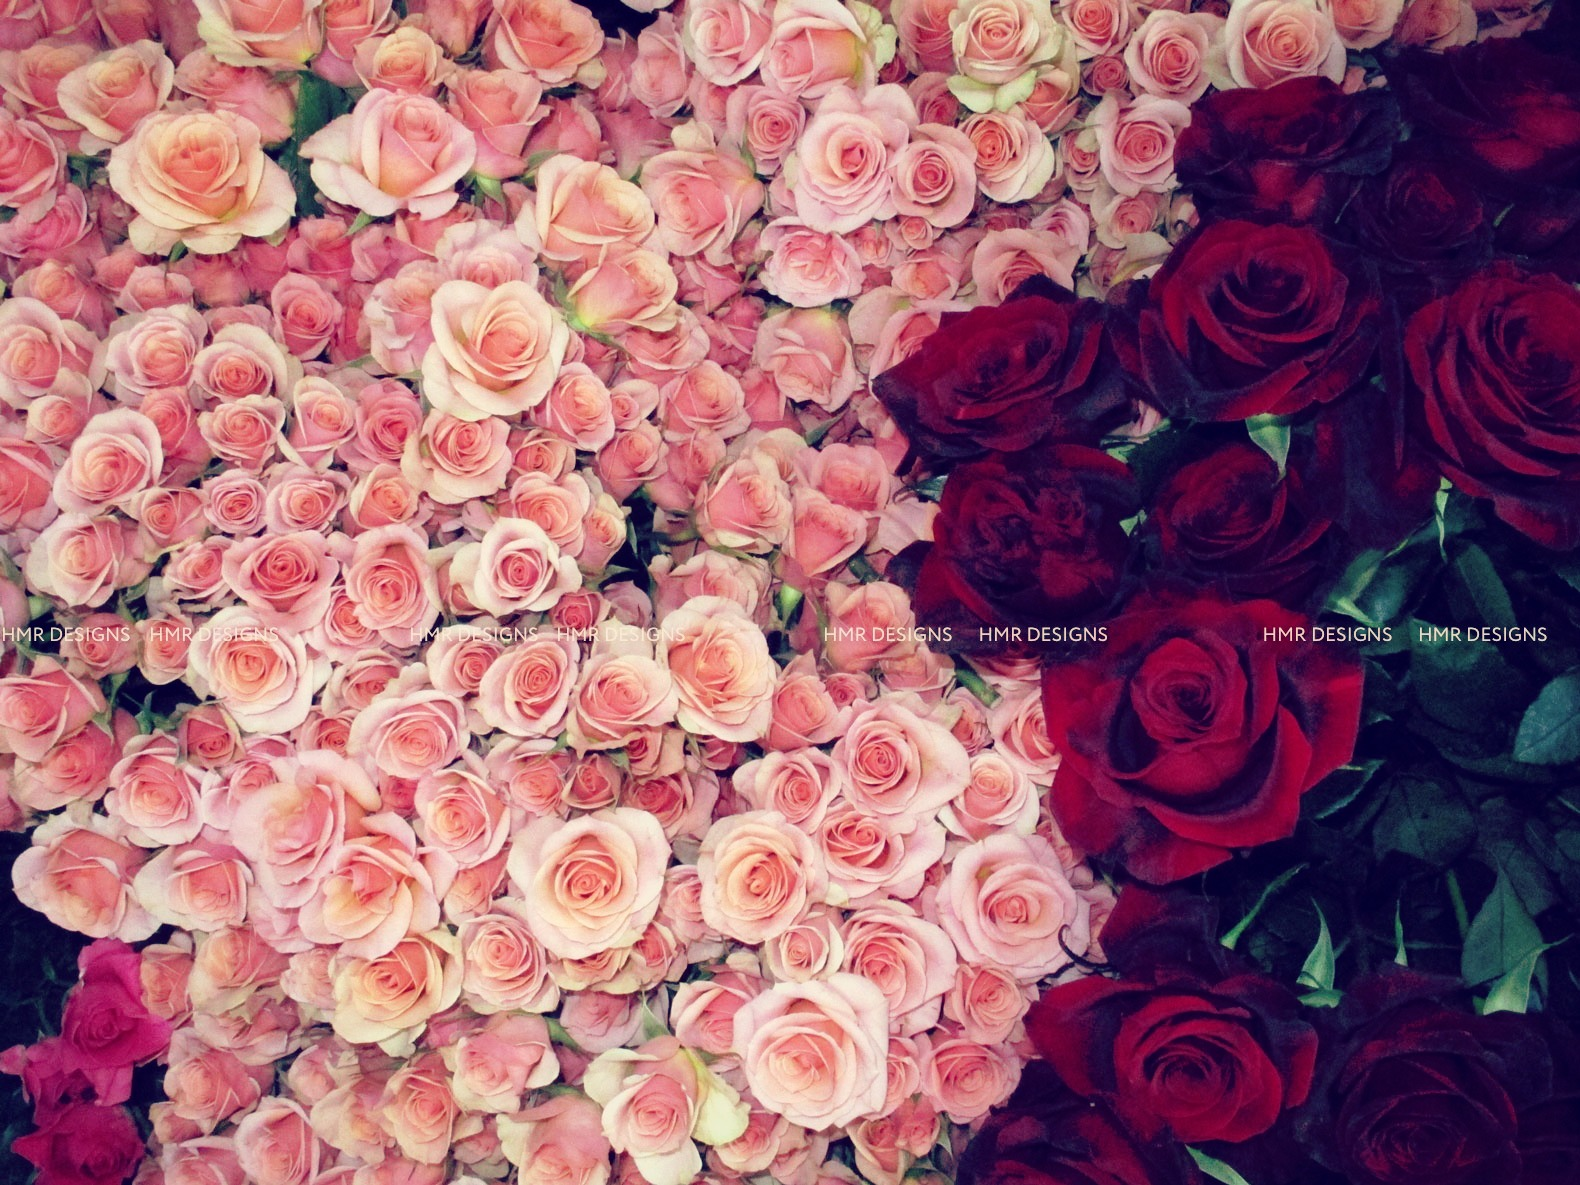 Rows of roses.